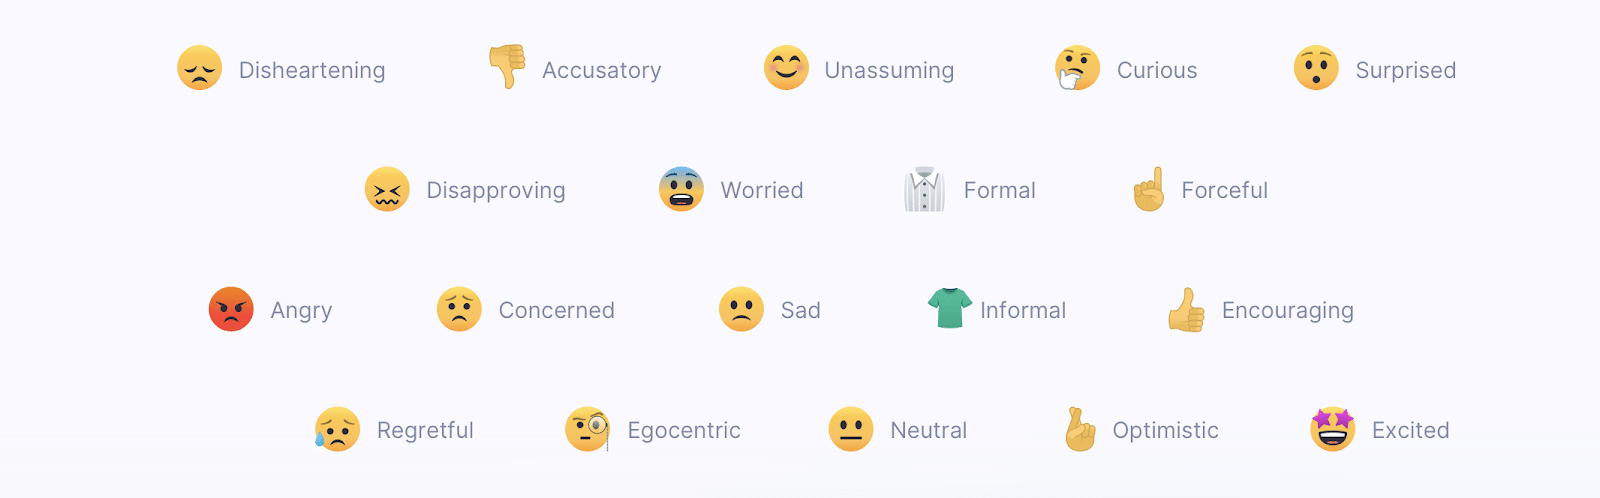 various emoji emotions for the kinds of tones it detects